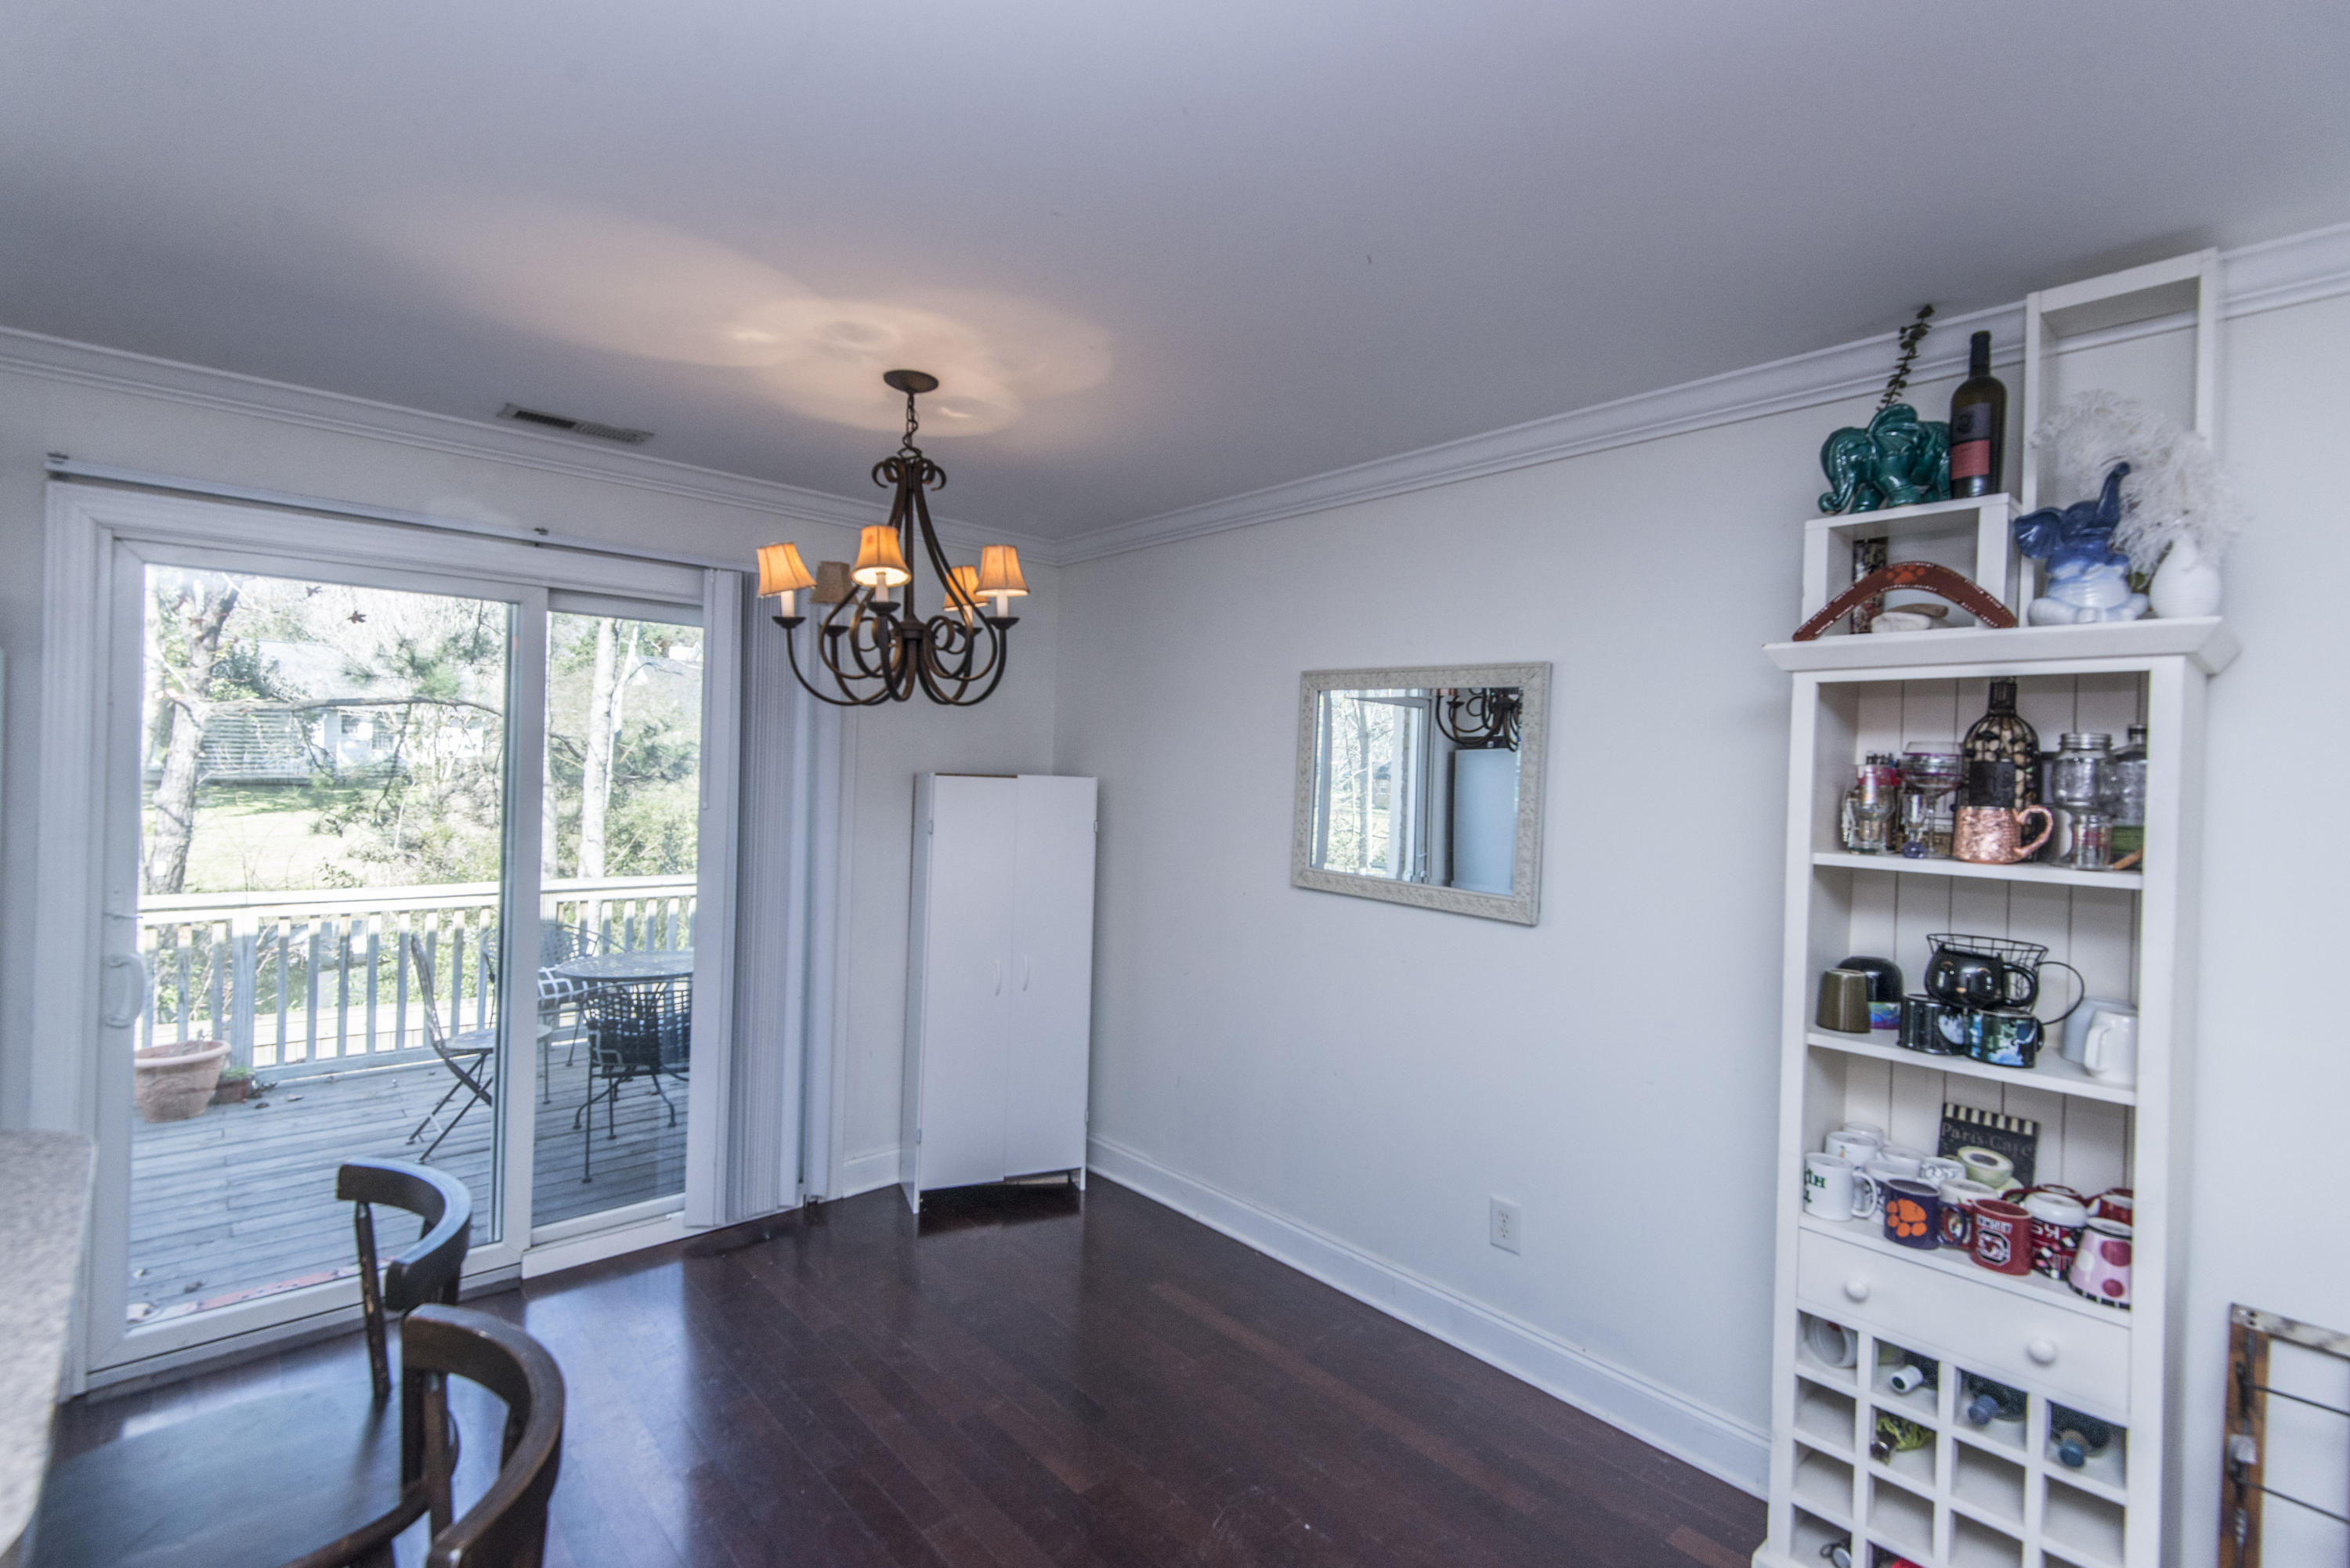 The Reserve at Wando East Homes For Sale - 1675 Lauda, Mount Pleasant, SC - 19